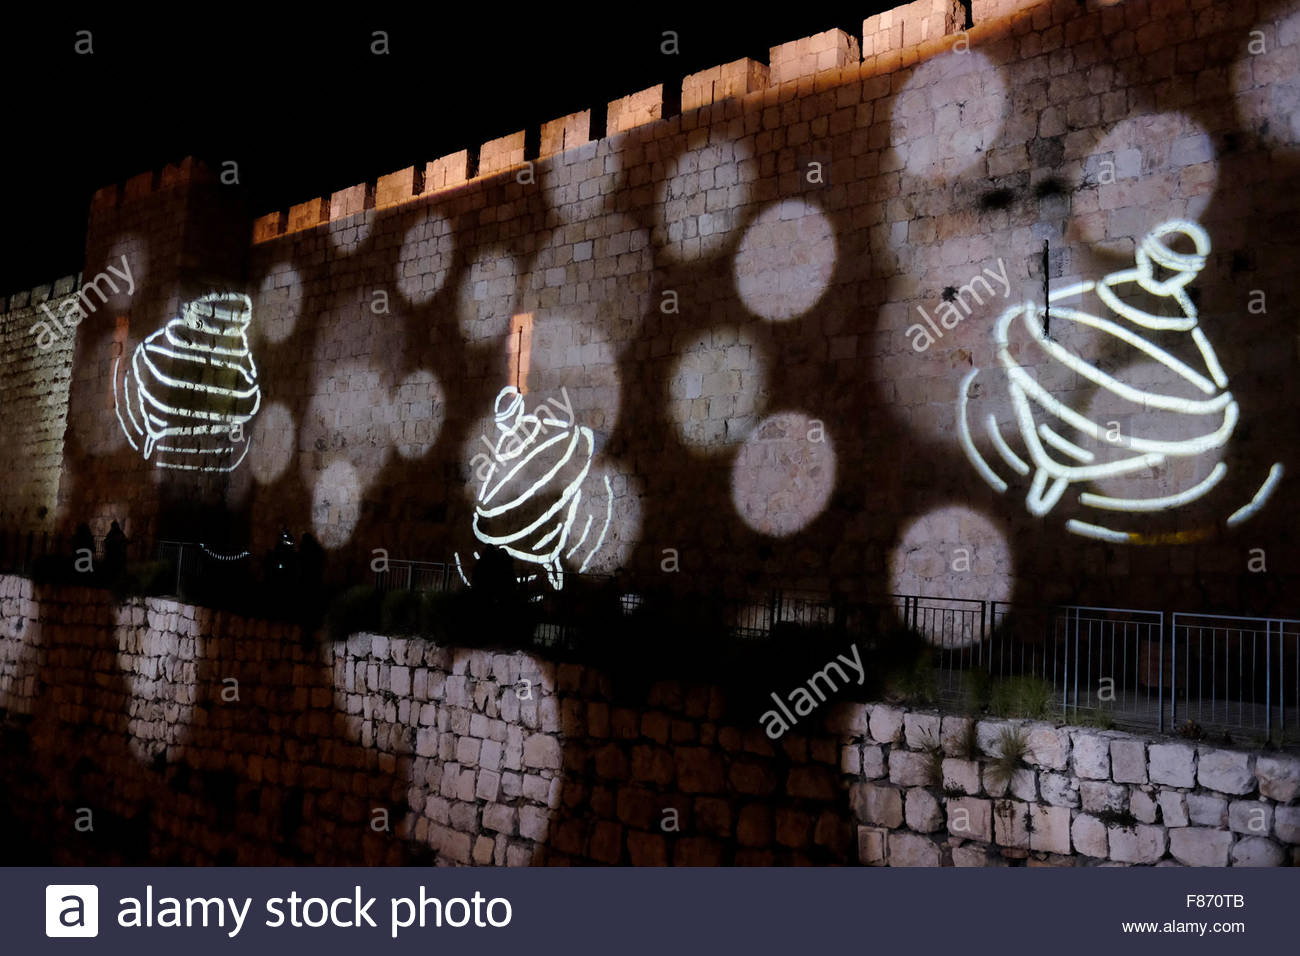 Jerusalem, Israel. 6th December, 2015. Images of Dridels which are a spinning top traditionally played with during - Stock Image